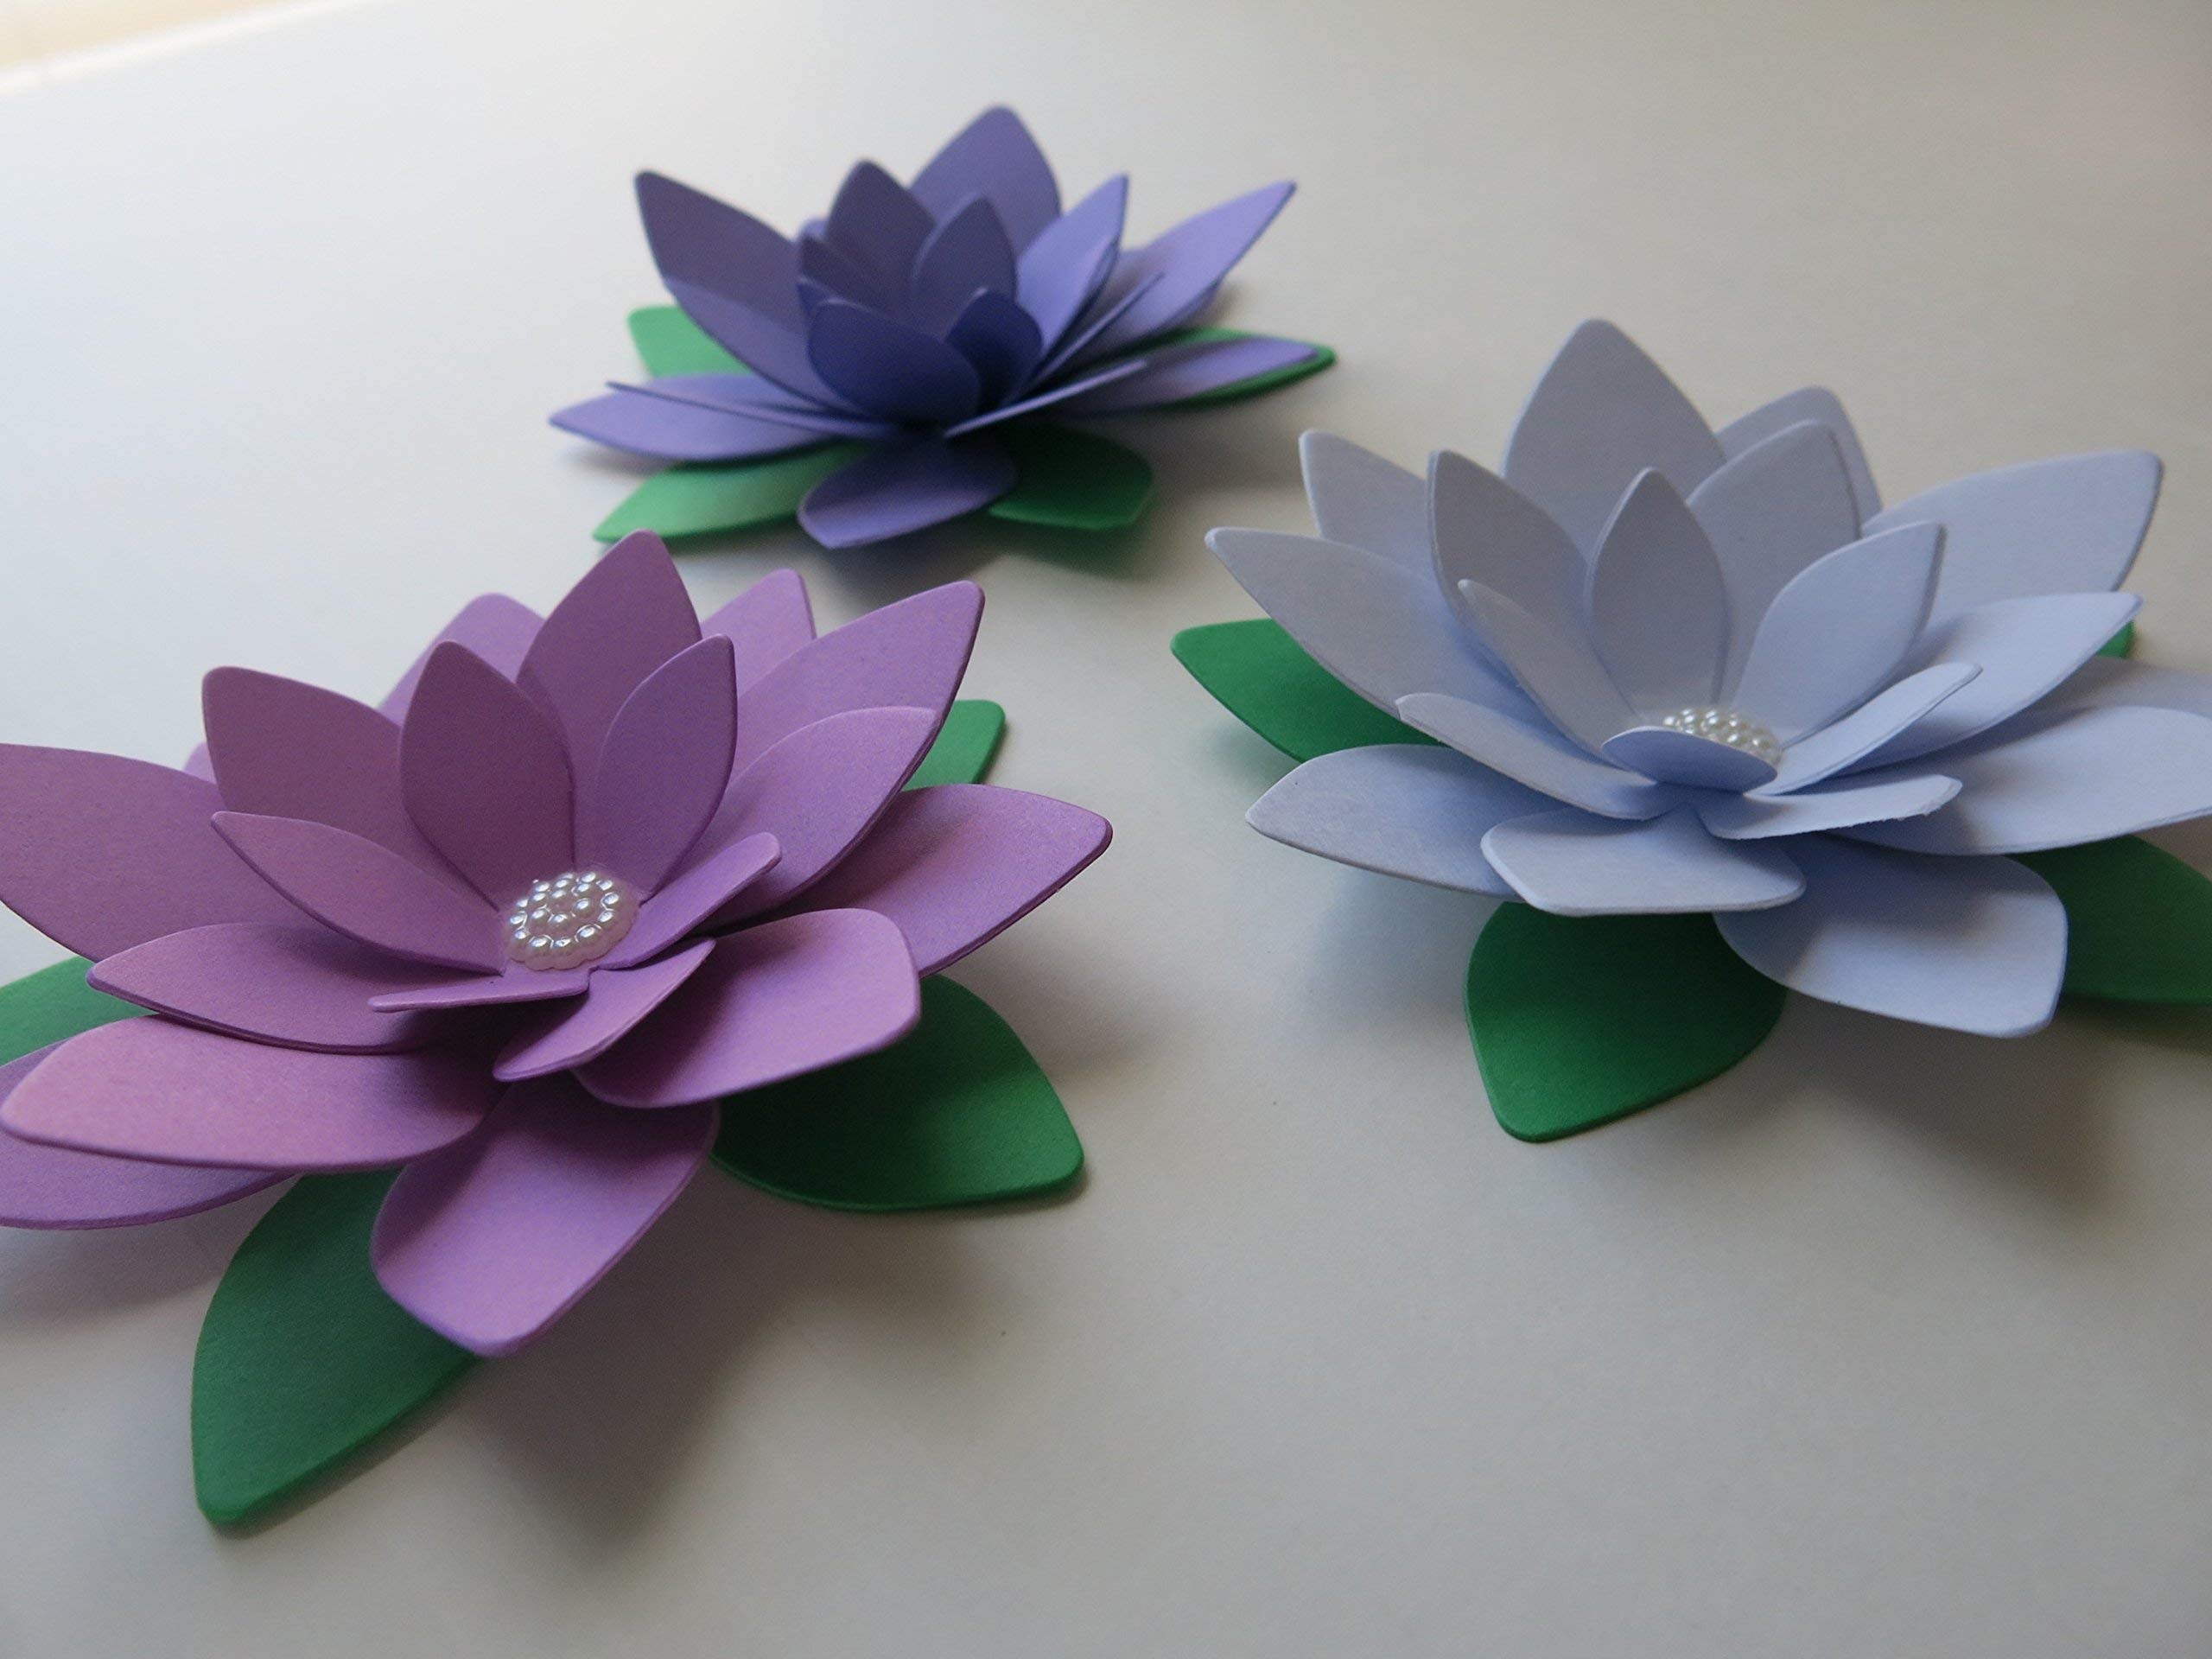 Pretty-Purple-Ombre-Lotus-Flowers-Set-of-3-4-Water-Lily-Floral-Centerpiece